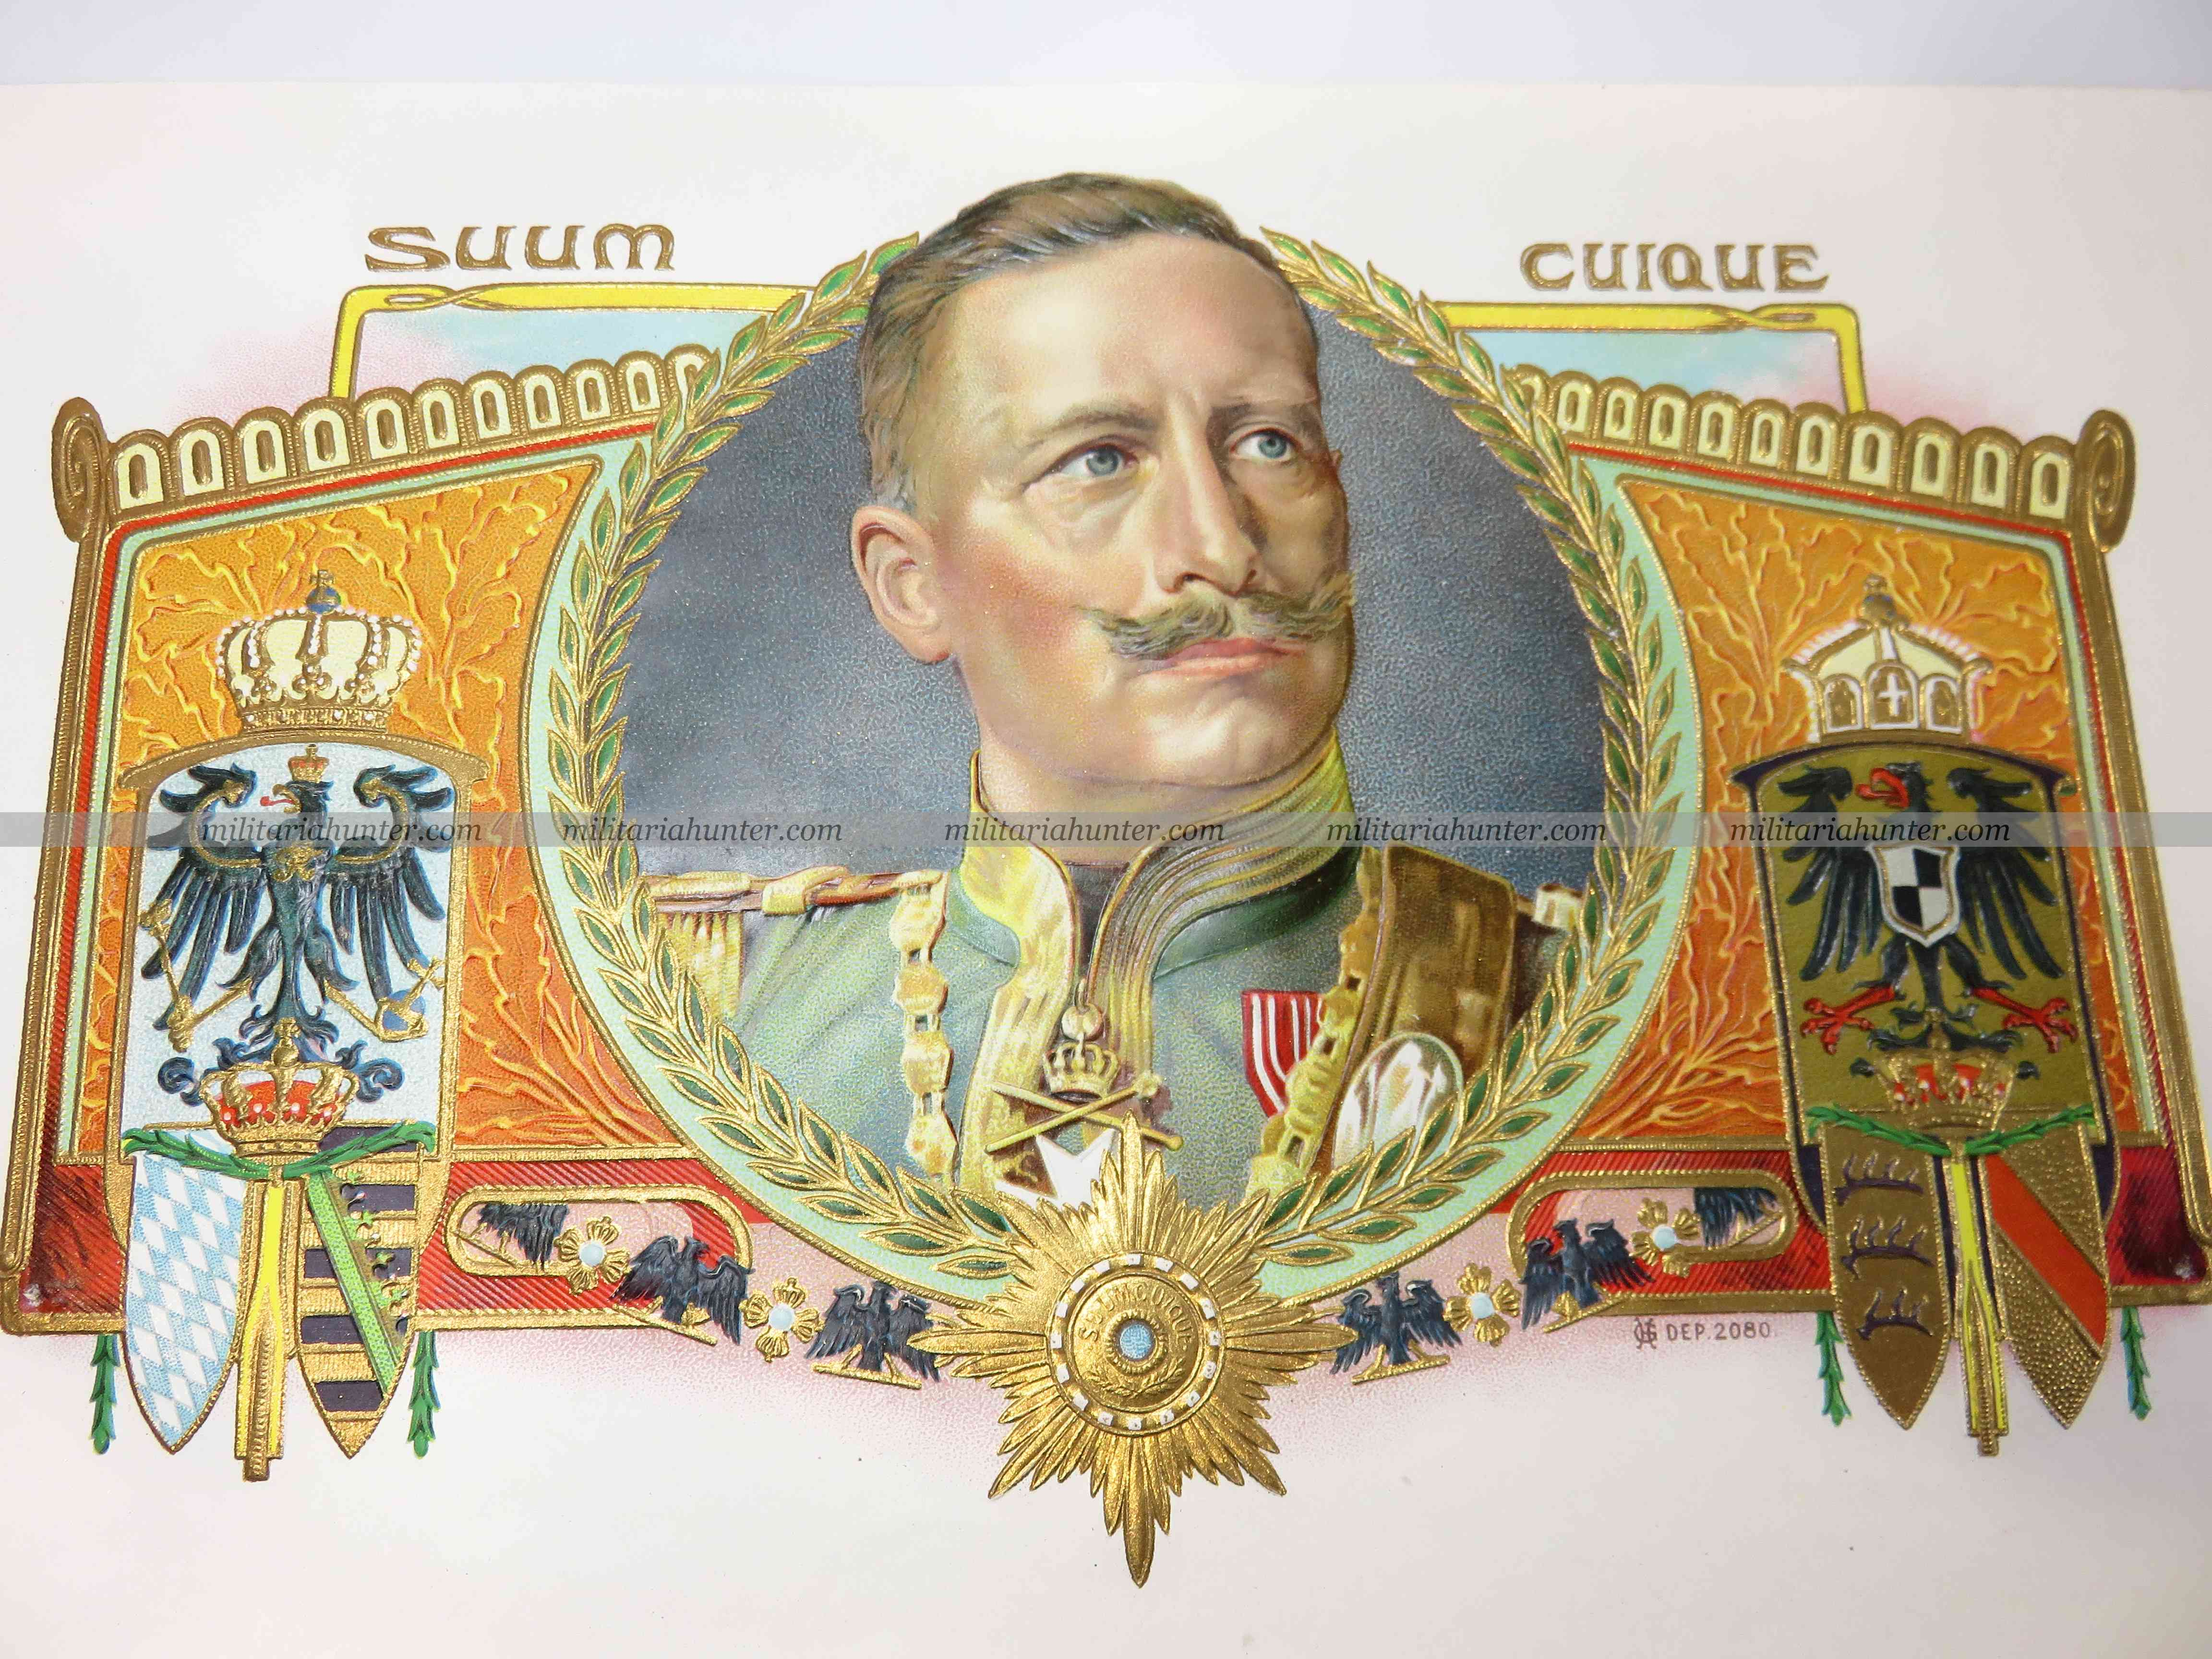 militaria : Etiquette de boîte à cigares allemande ww1 german cigars box labels